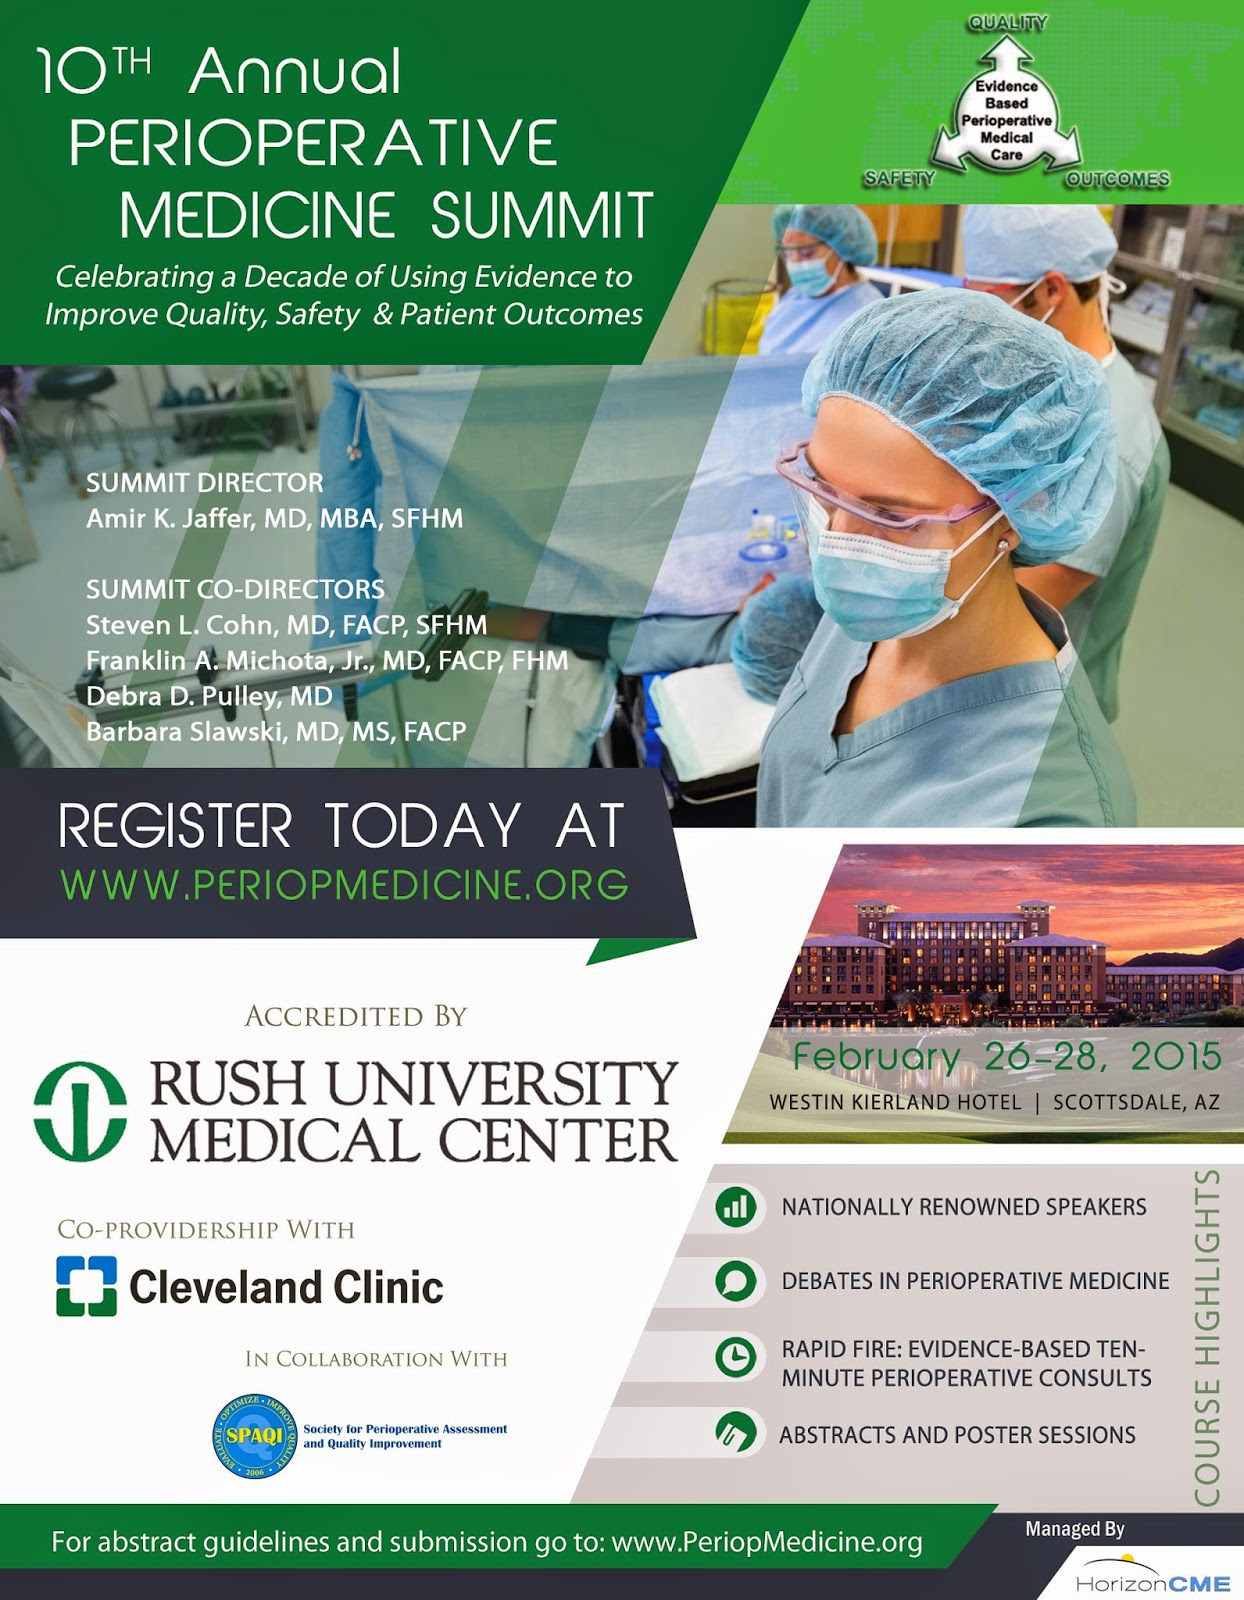 10th Annual Perioperative Medicine Summit 2015